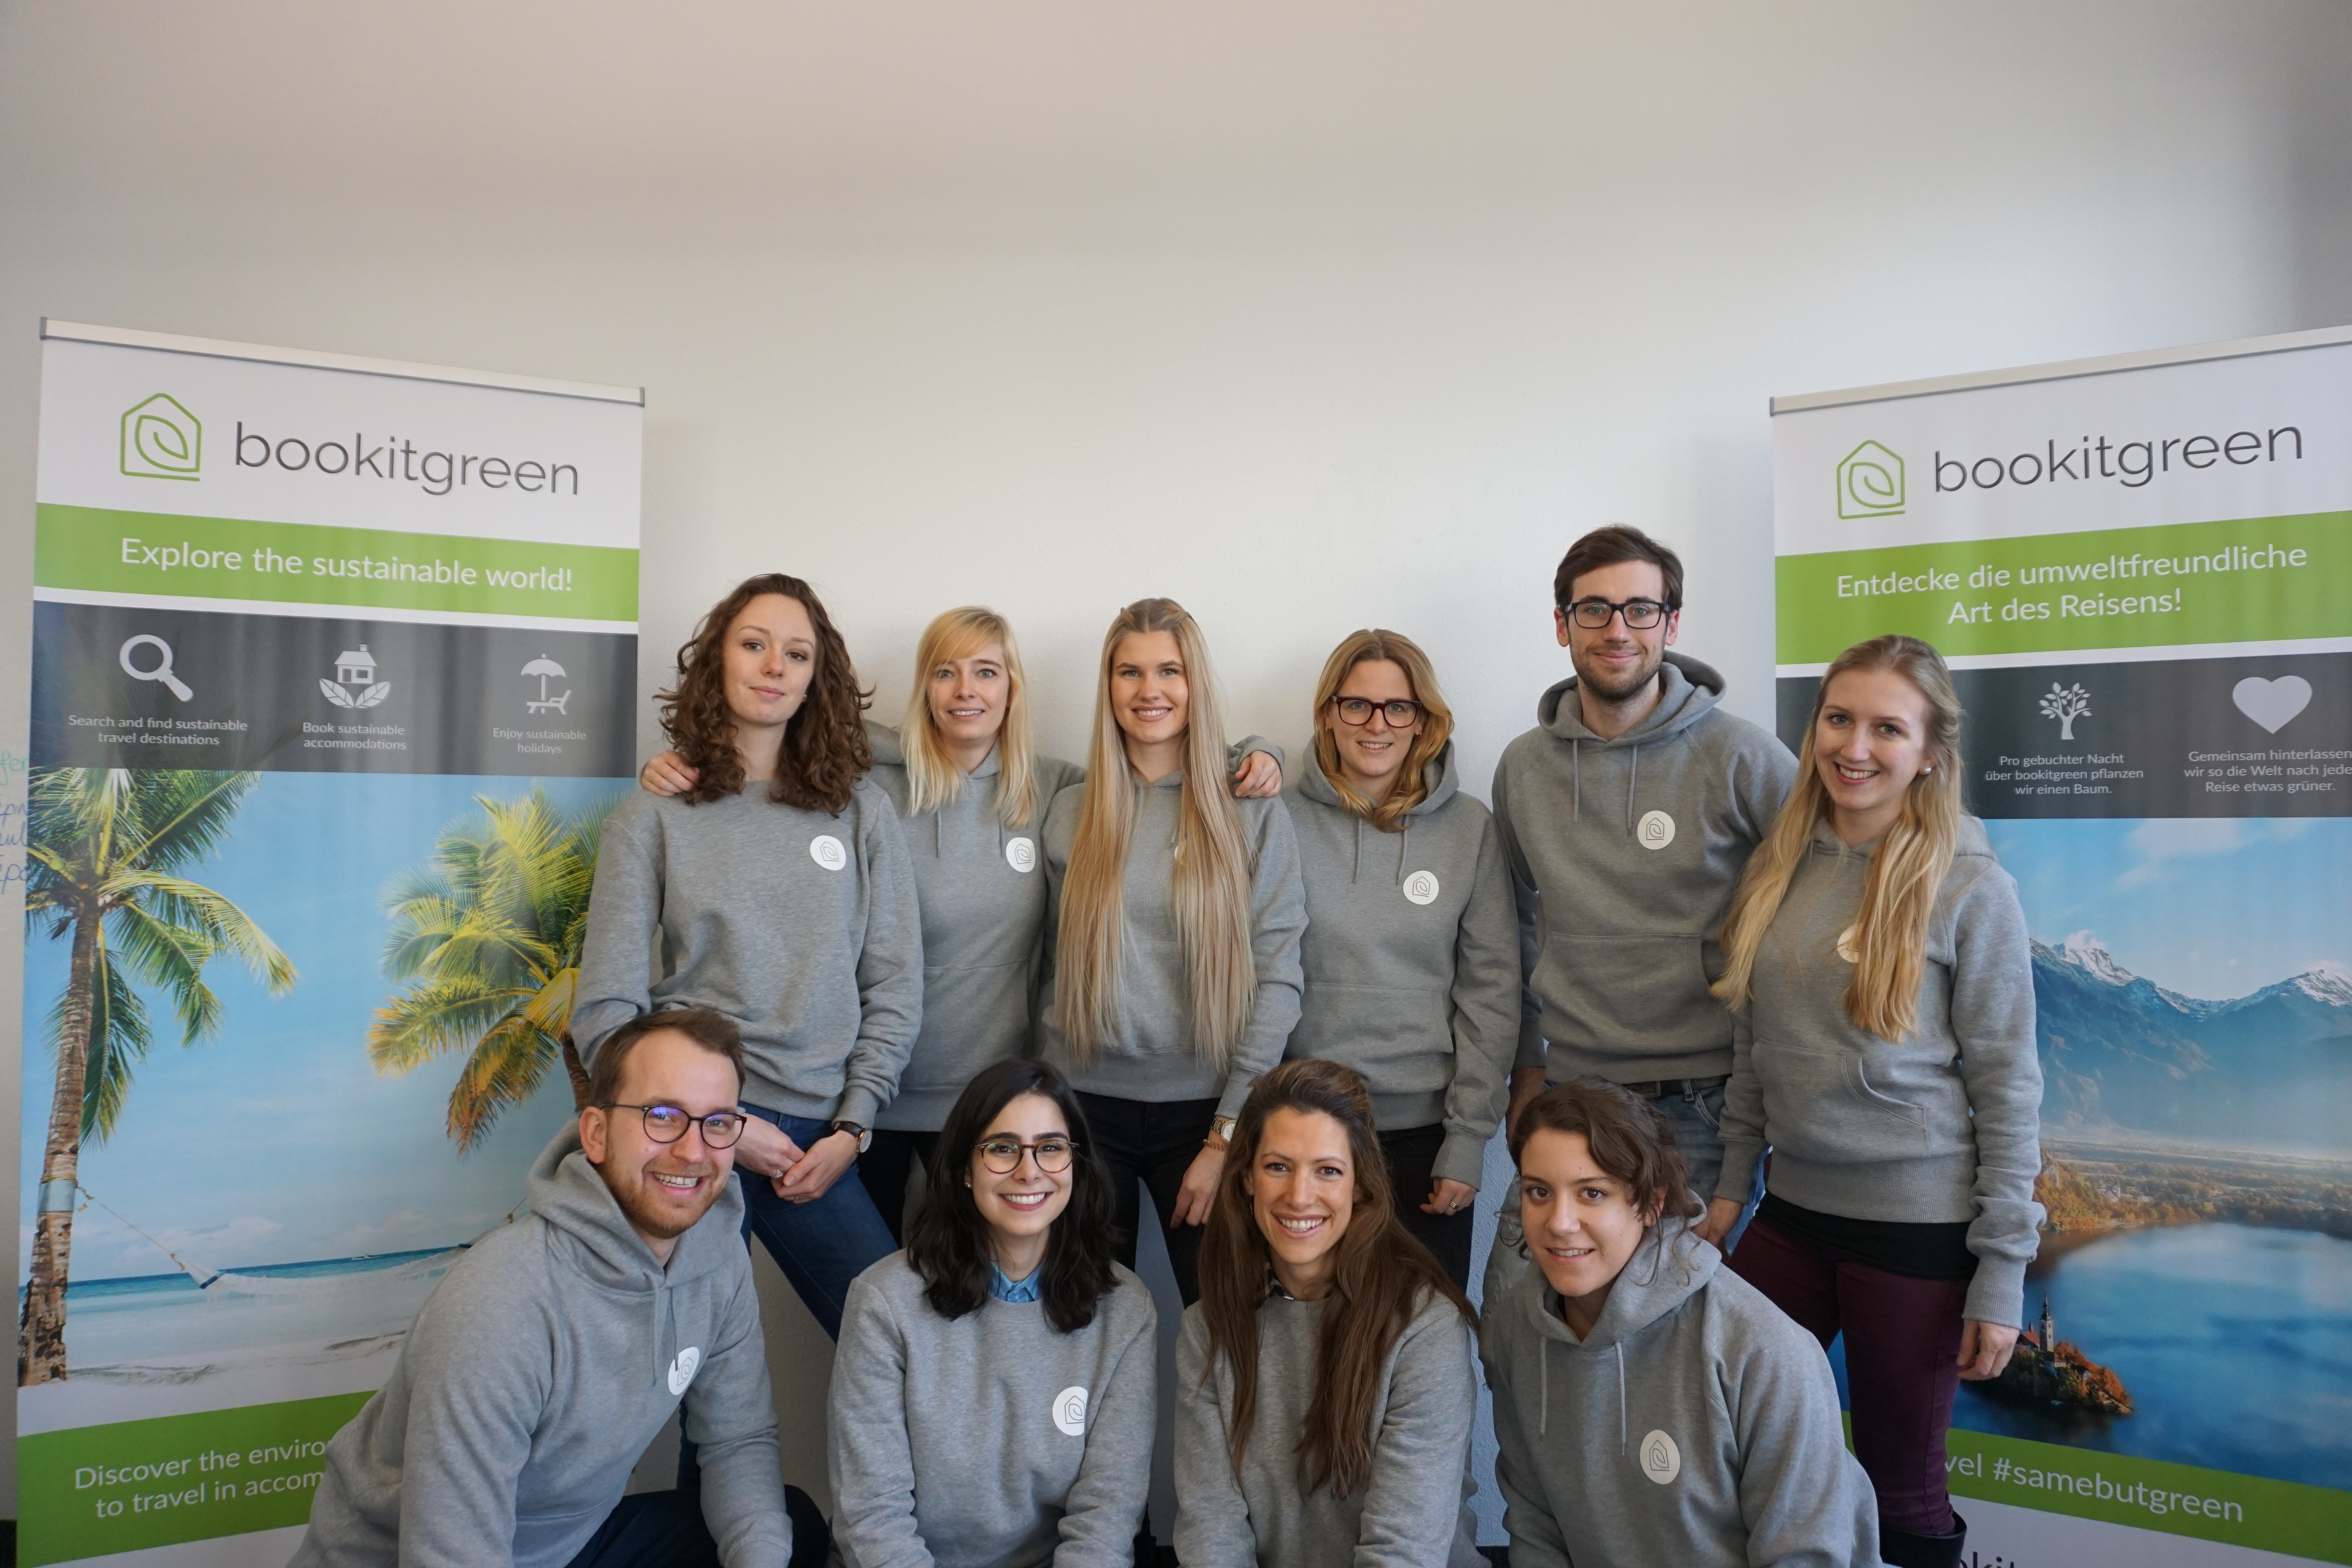 bookitgreen Team Online Platform Sustainable Travel Booking